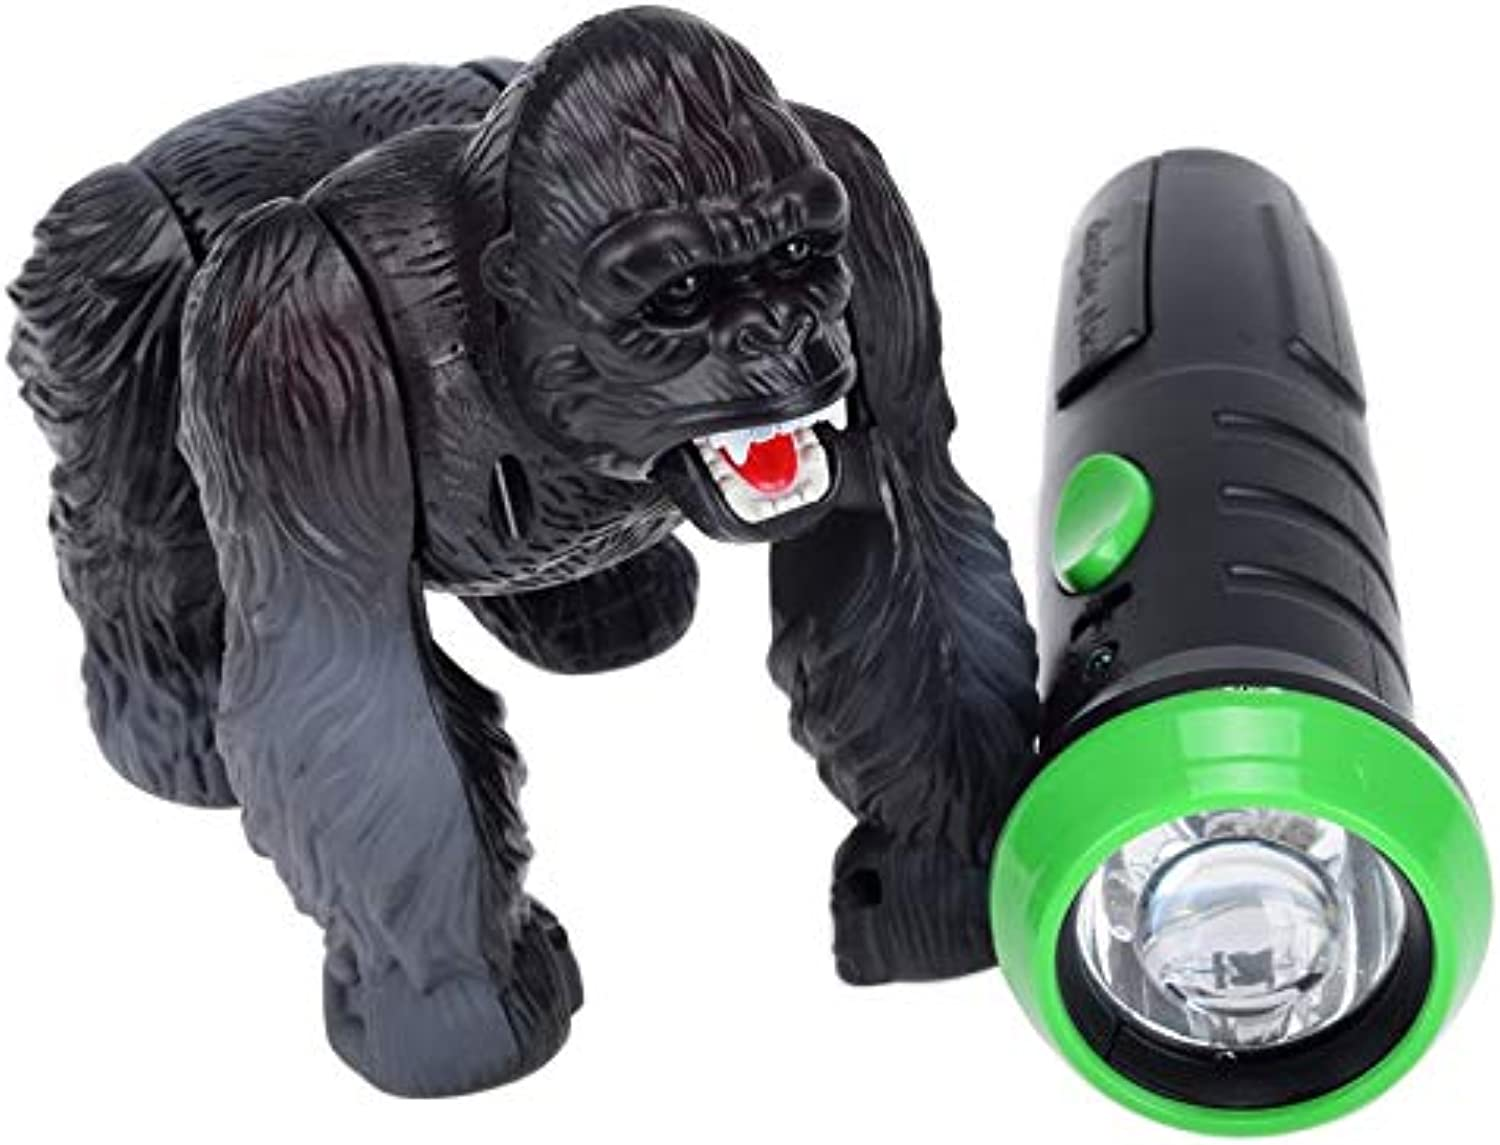 Generic Lighting Infrared RC Gorilla Simulative Remote Control Animal Electric Toy with Sound Funny Terrifying Christmas Kids Gift New